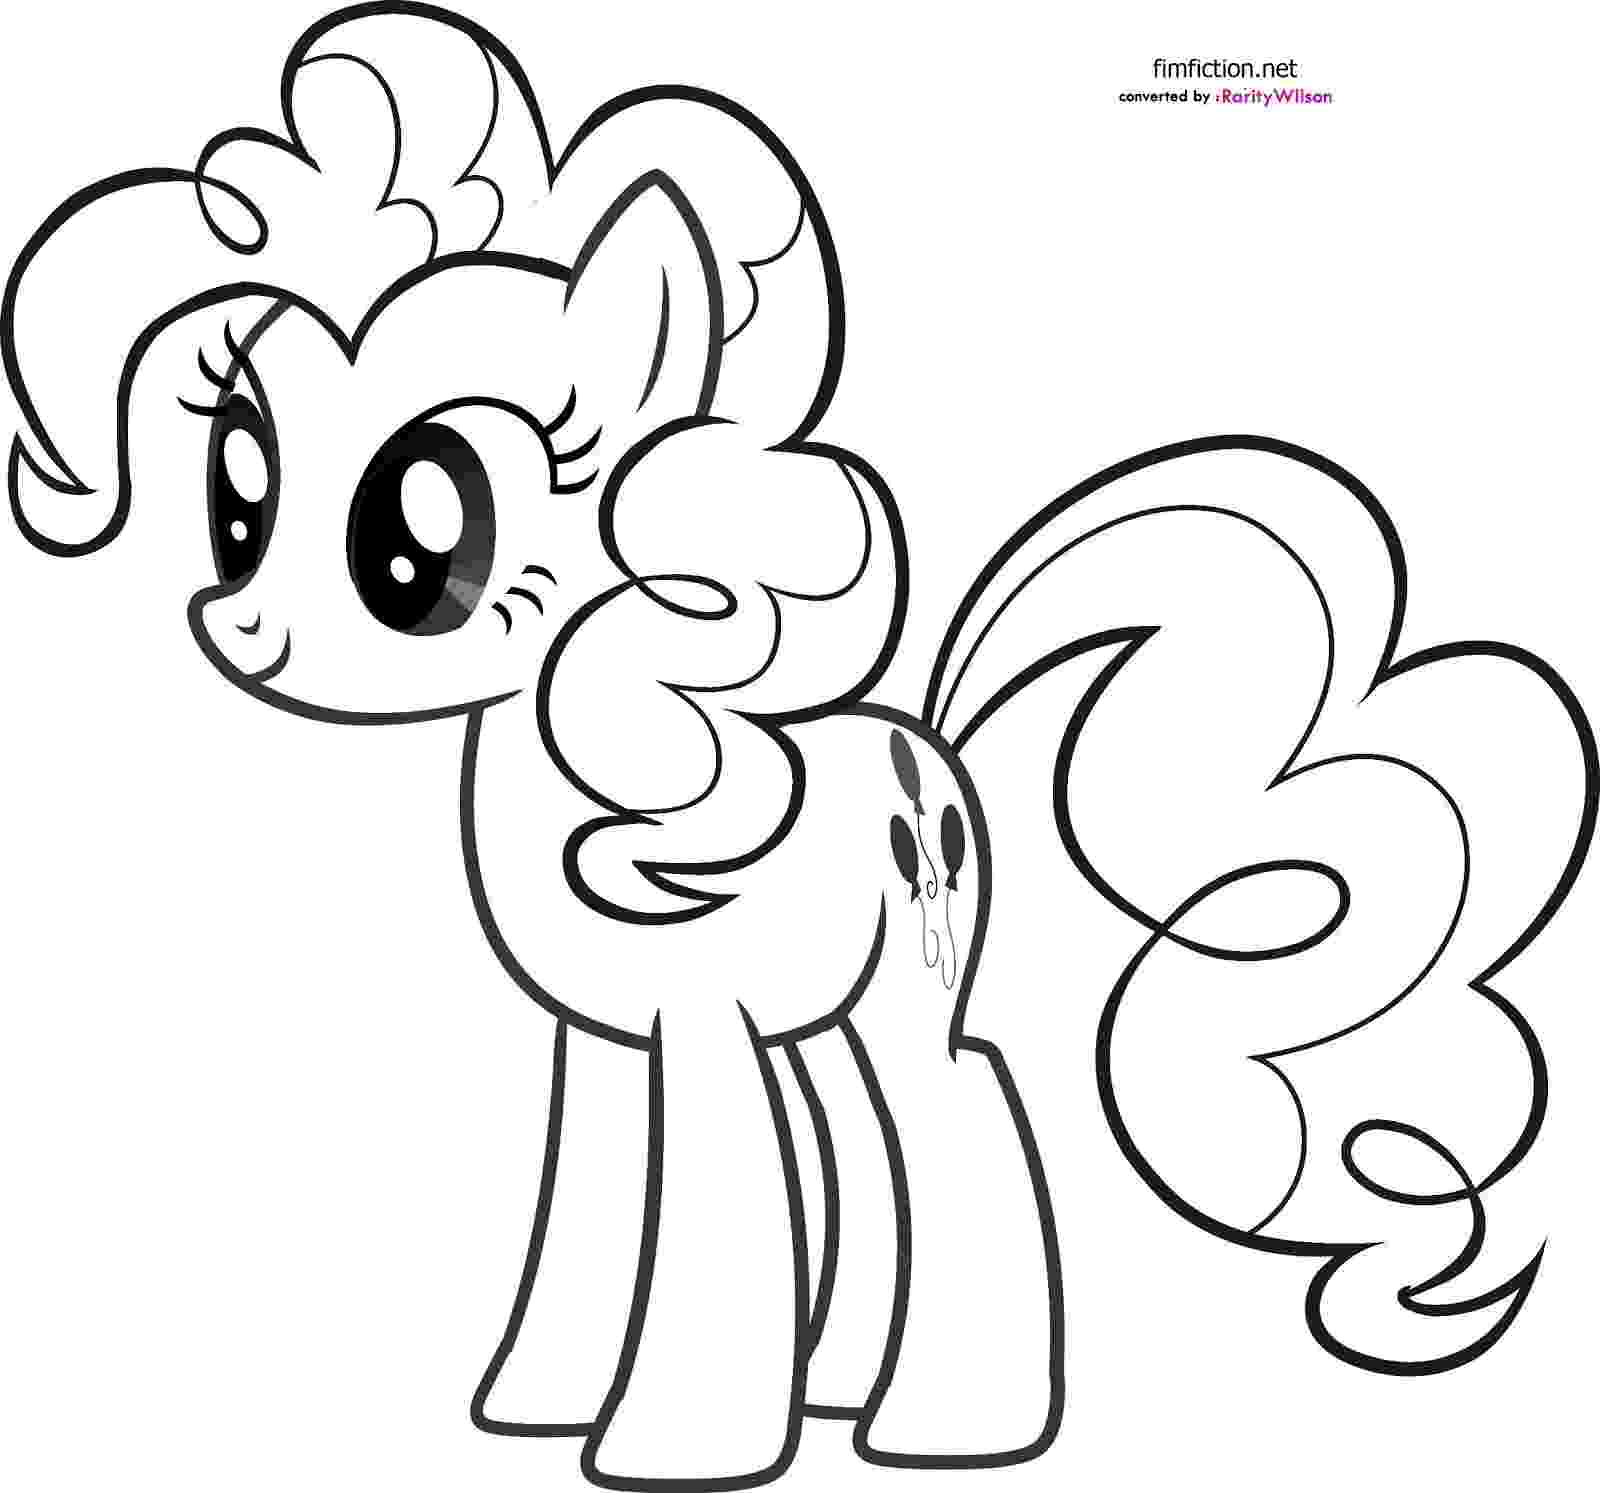 pinky pie coloring page my little pony pinkie pie coloring pages team colors pinky coloring page pie